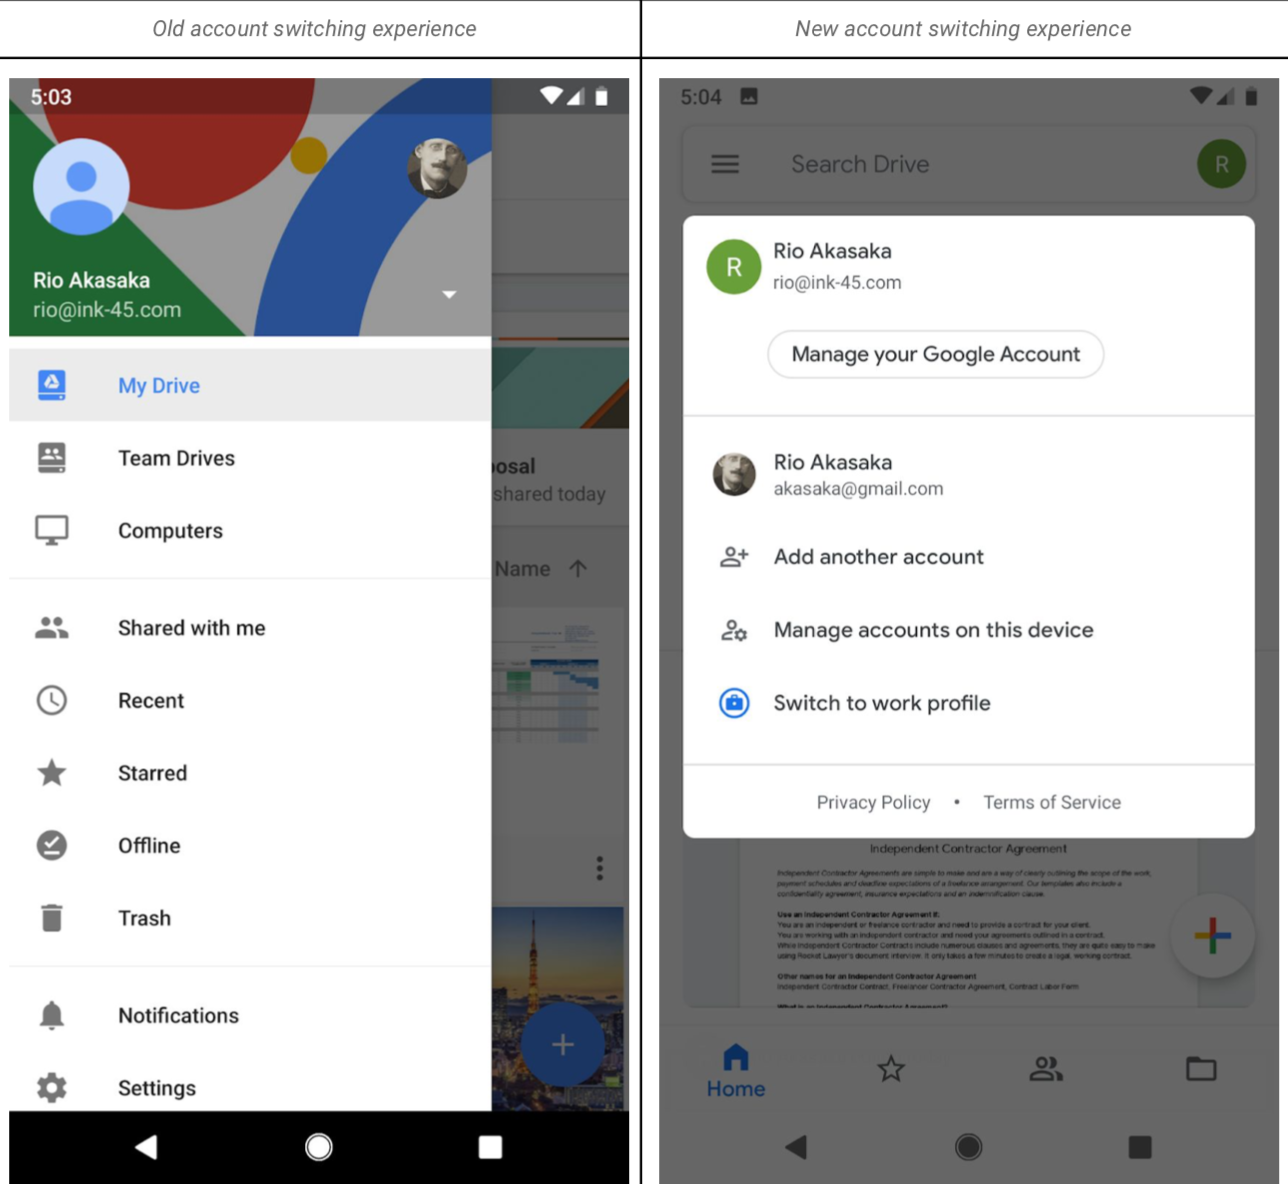 Google Drive redesigns its mobile app for Android and iOS users 1